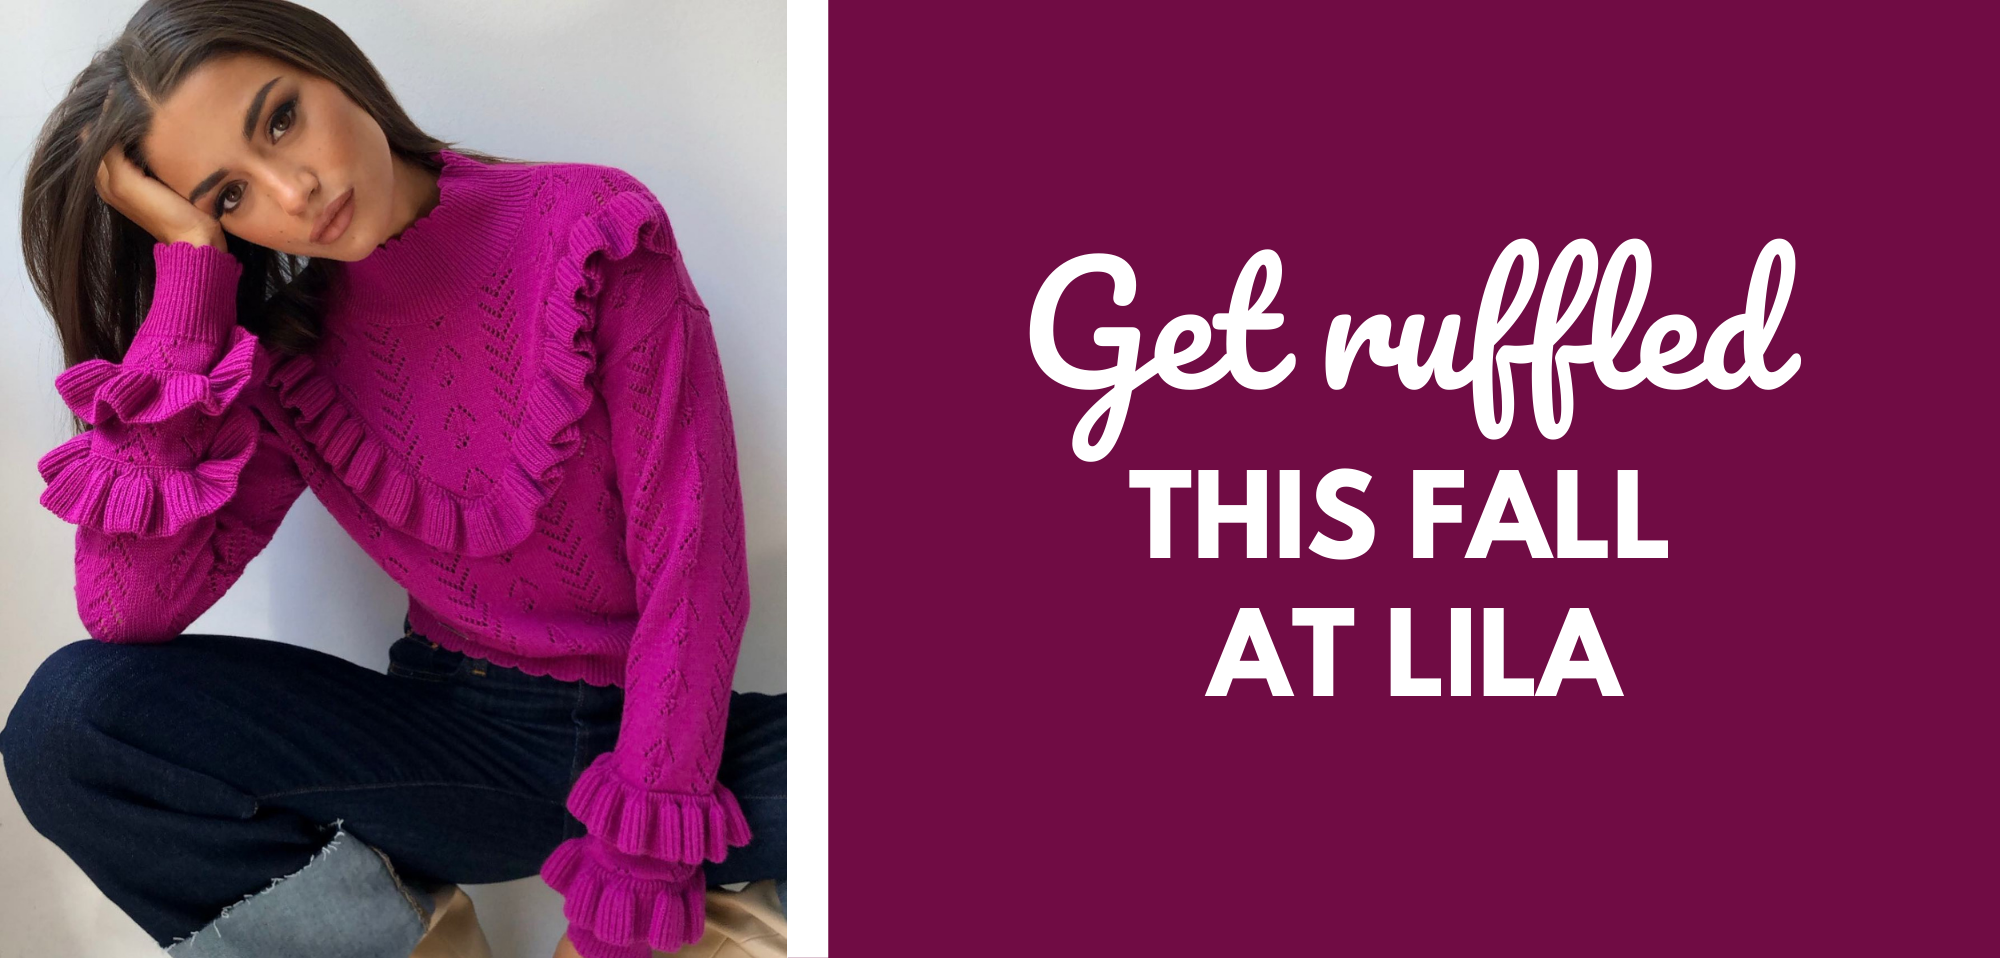 Get ruffled this Fall at LILA.